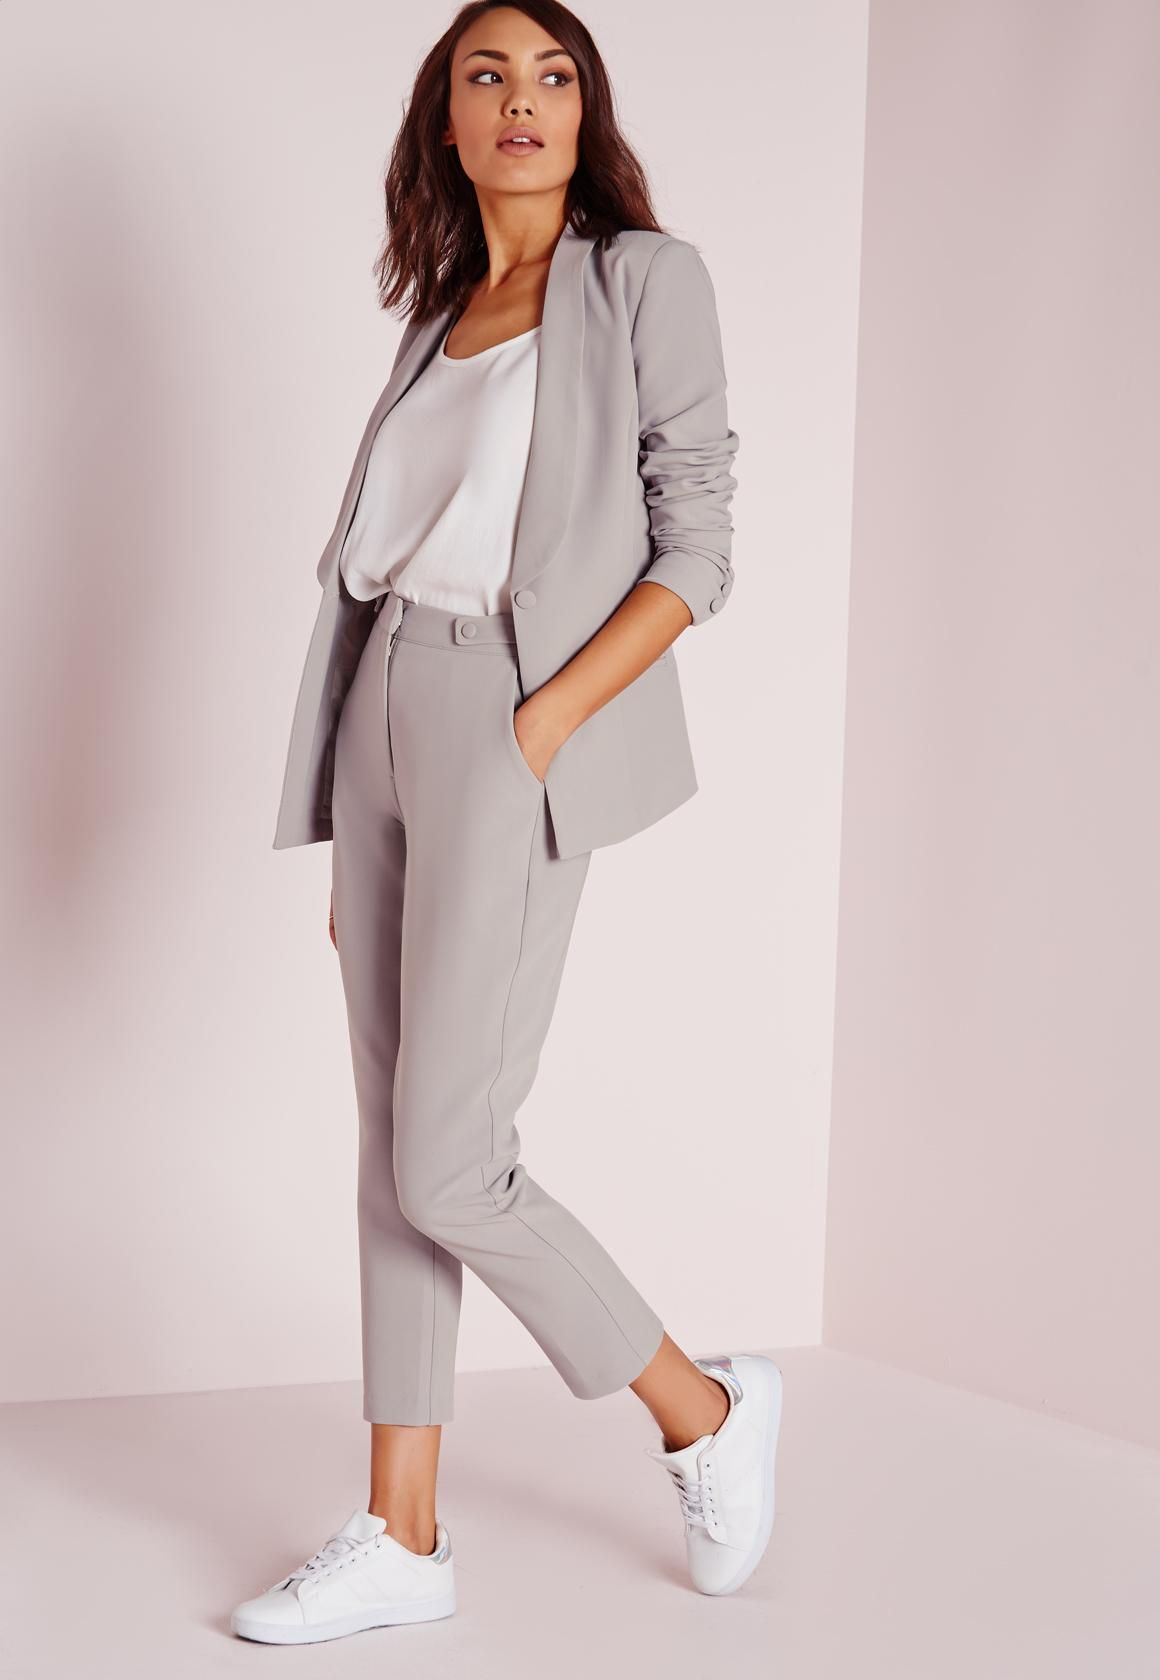 missguided pantalon de tailleur gris boutons fryzury i dobry wygl d pinterest. Black Bedroom Furniture Sets. Home Design Ideas